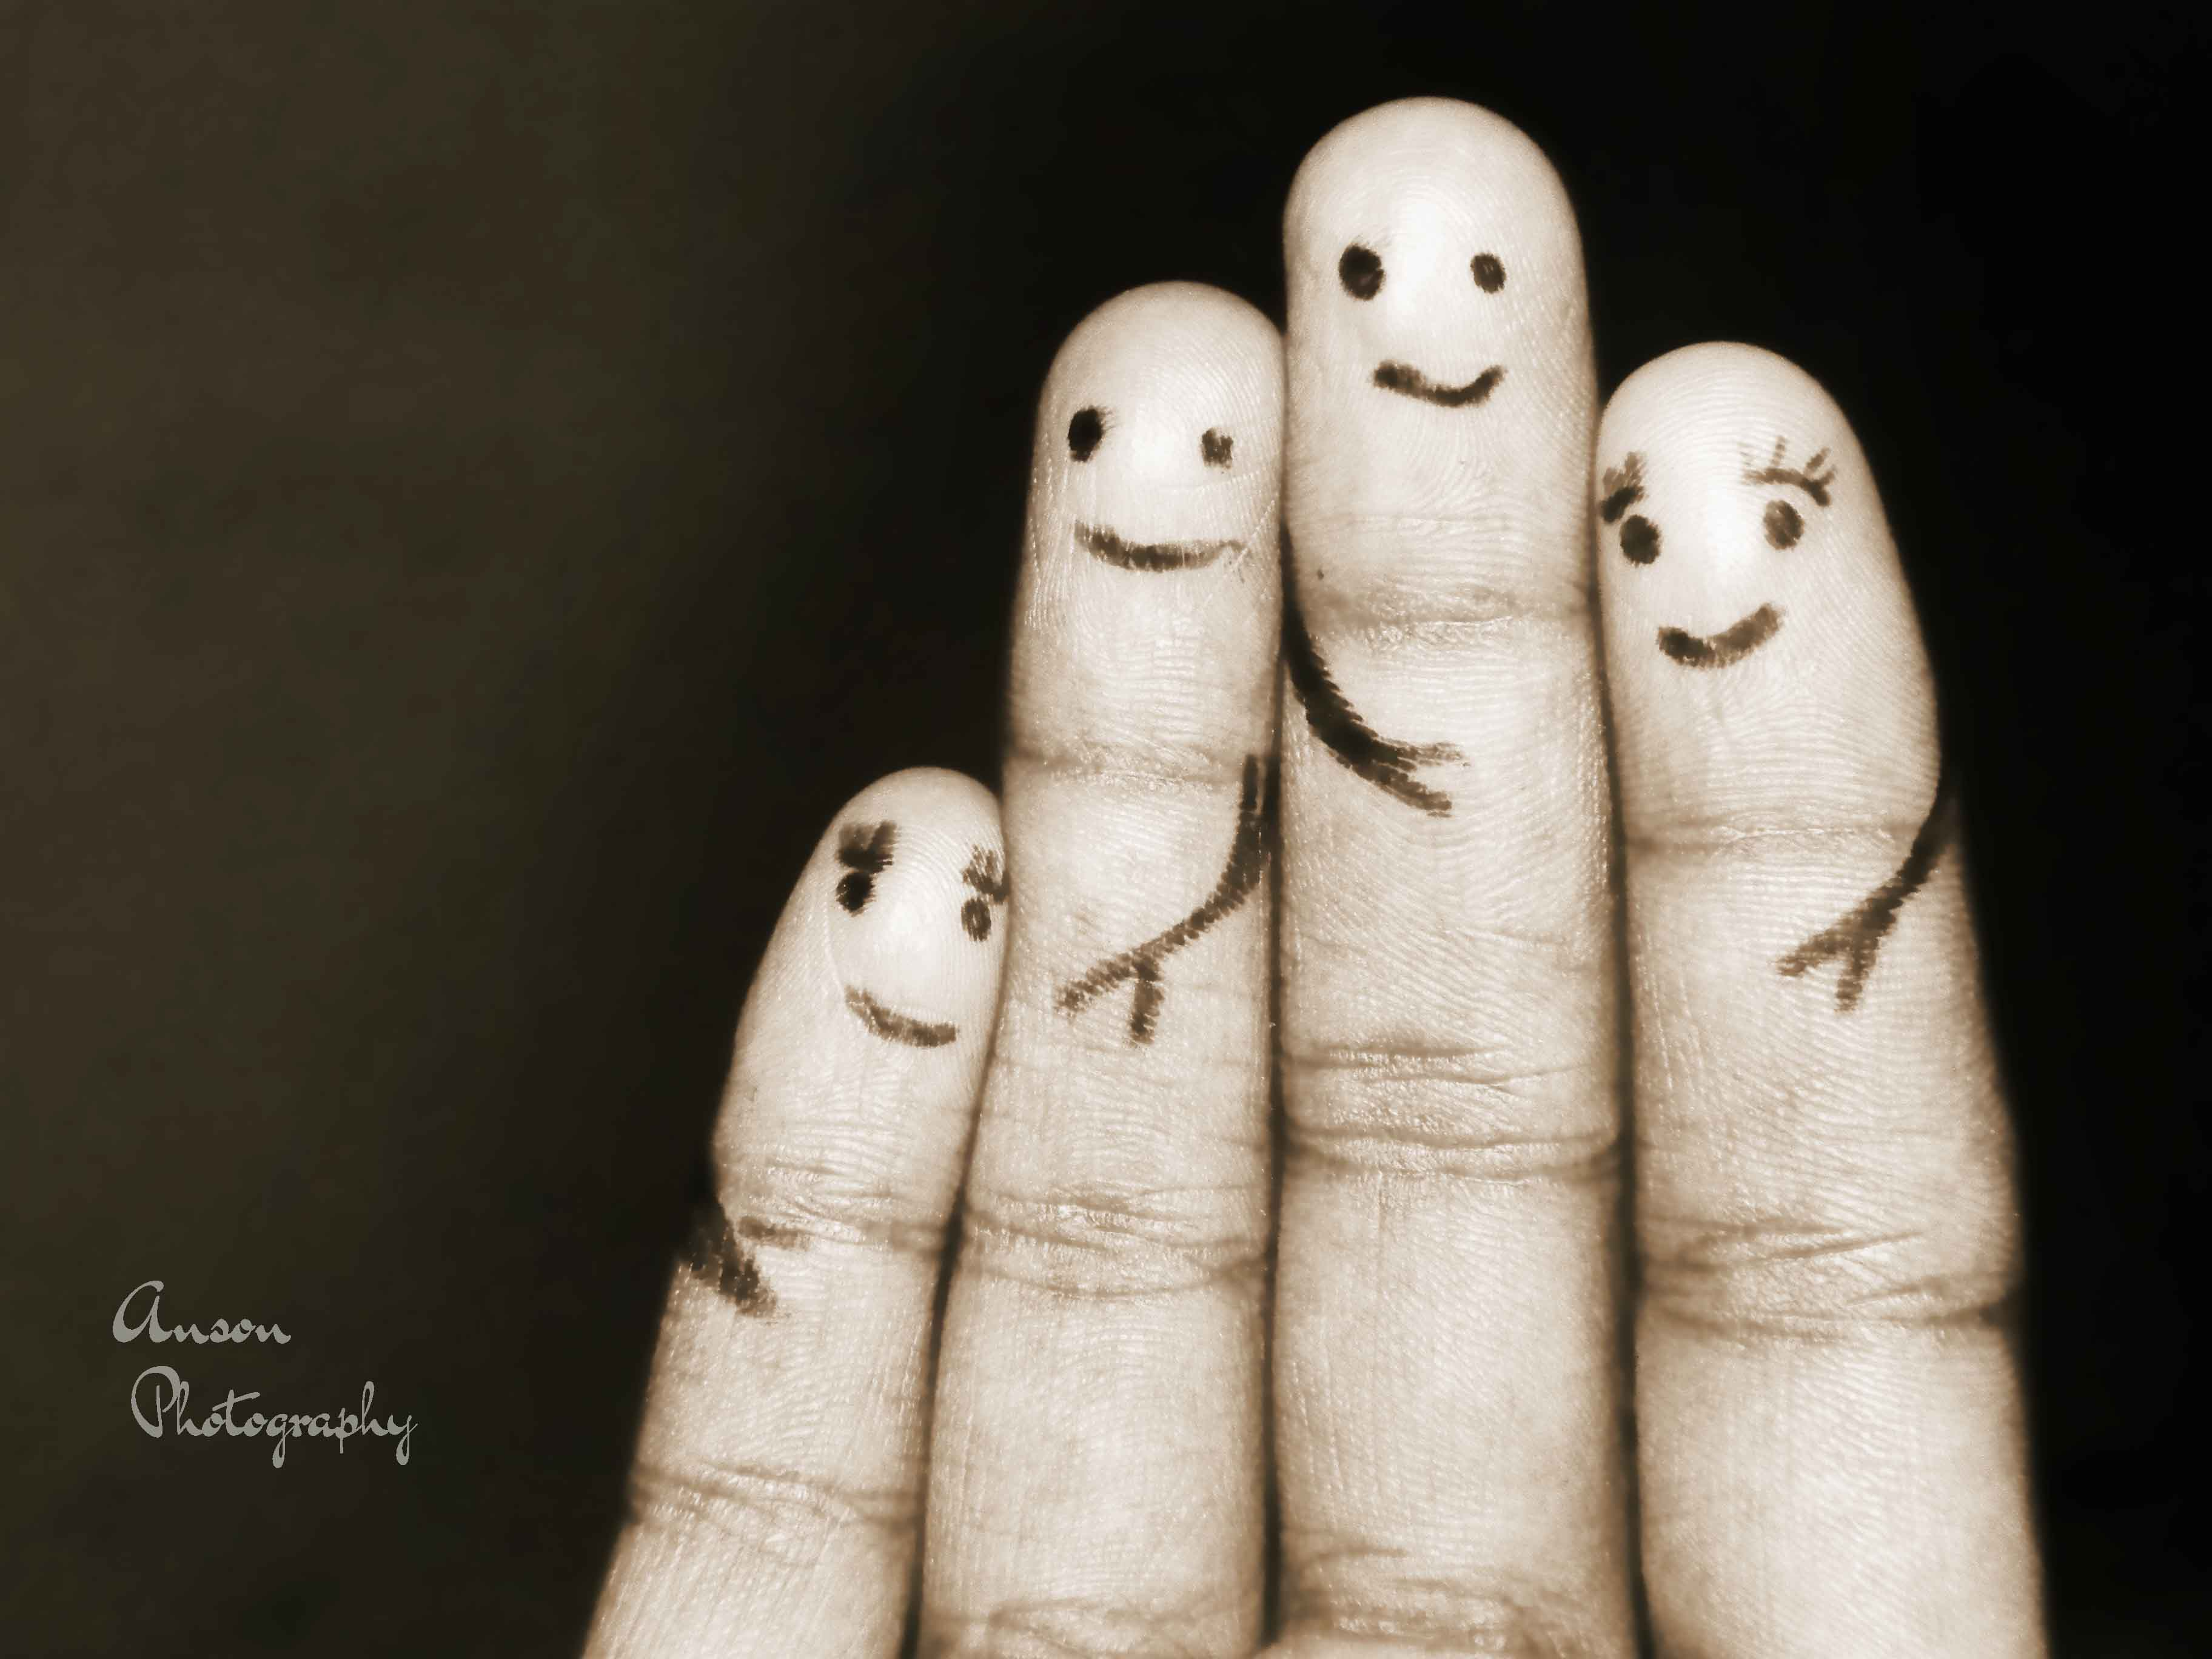 Photo of fingers with faces